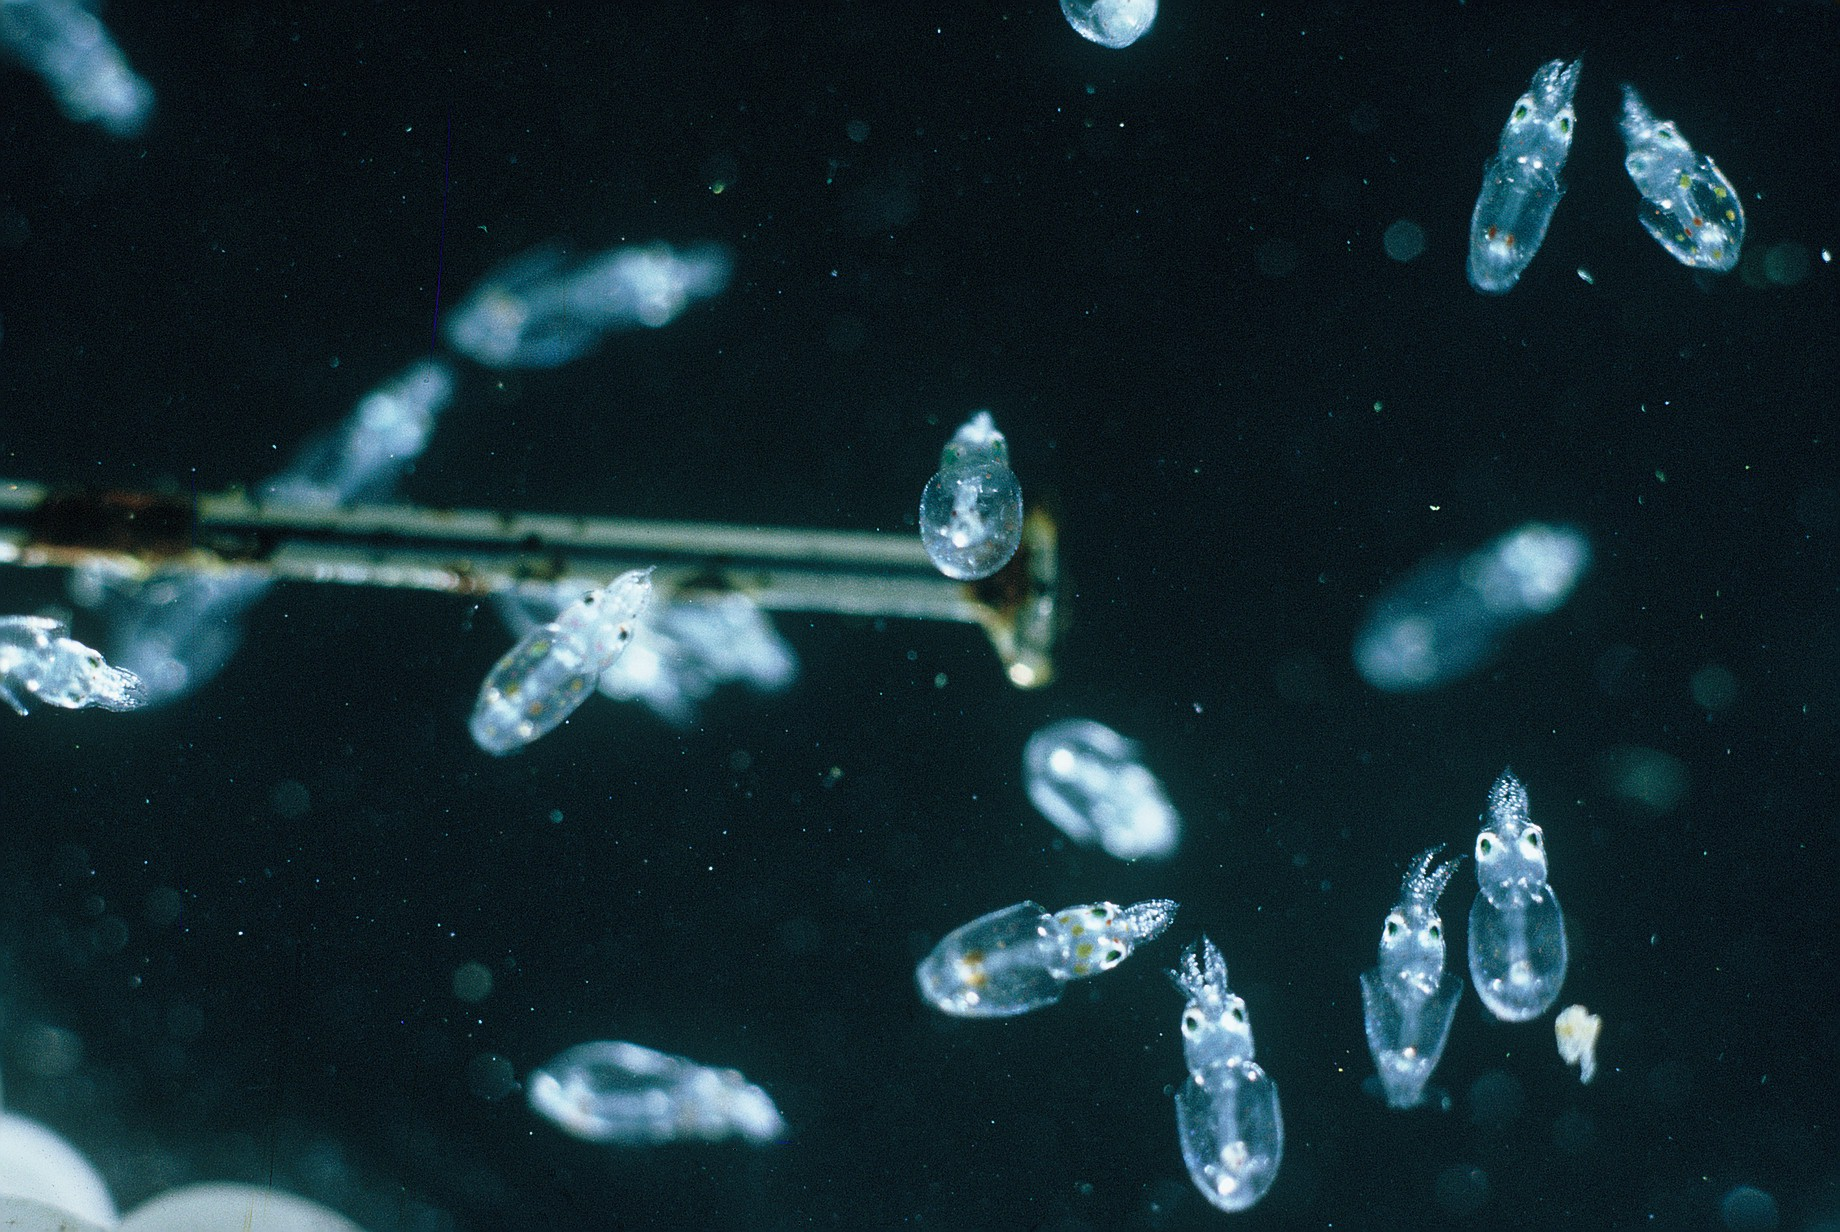 Photograph of many tiny transparent larval squid surrounding the head of a dissecting pin.<div class='credit'><strong>Credit:</strong> Photograph of many tiny transparent larval squid surrounding the head of a dissecting pin.</div>